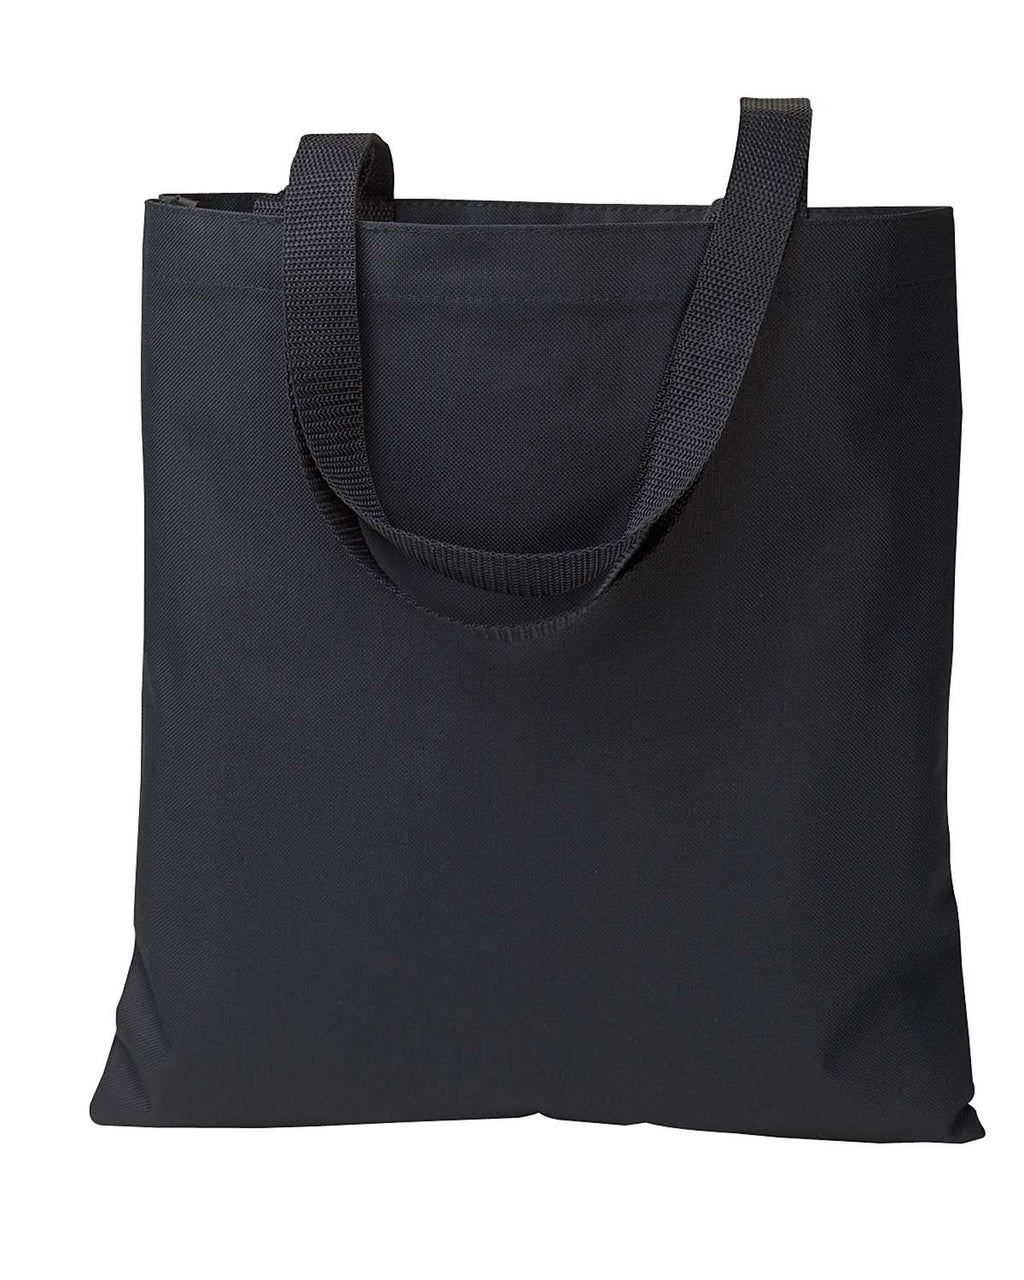 Create your own Shopping Bag Canvas Tote